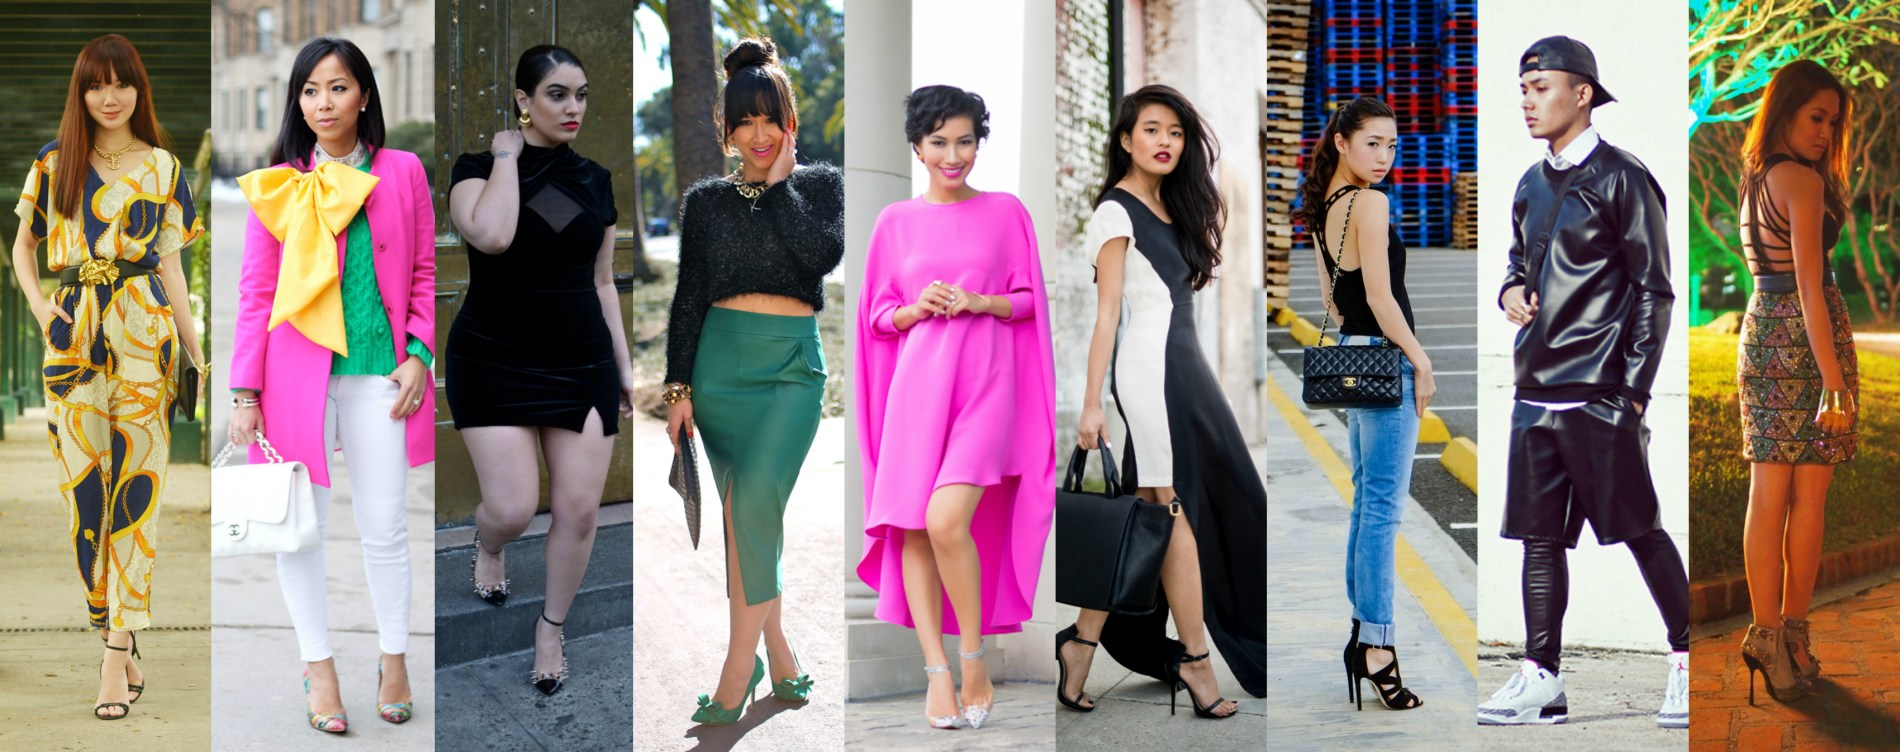 Top 40 Asian Style Bloggers - Art Becomes You